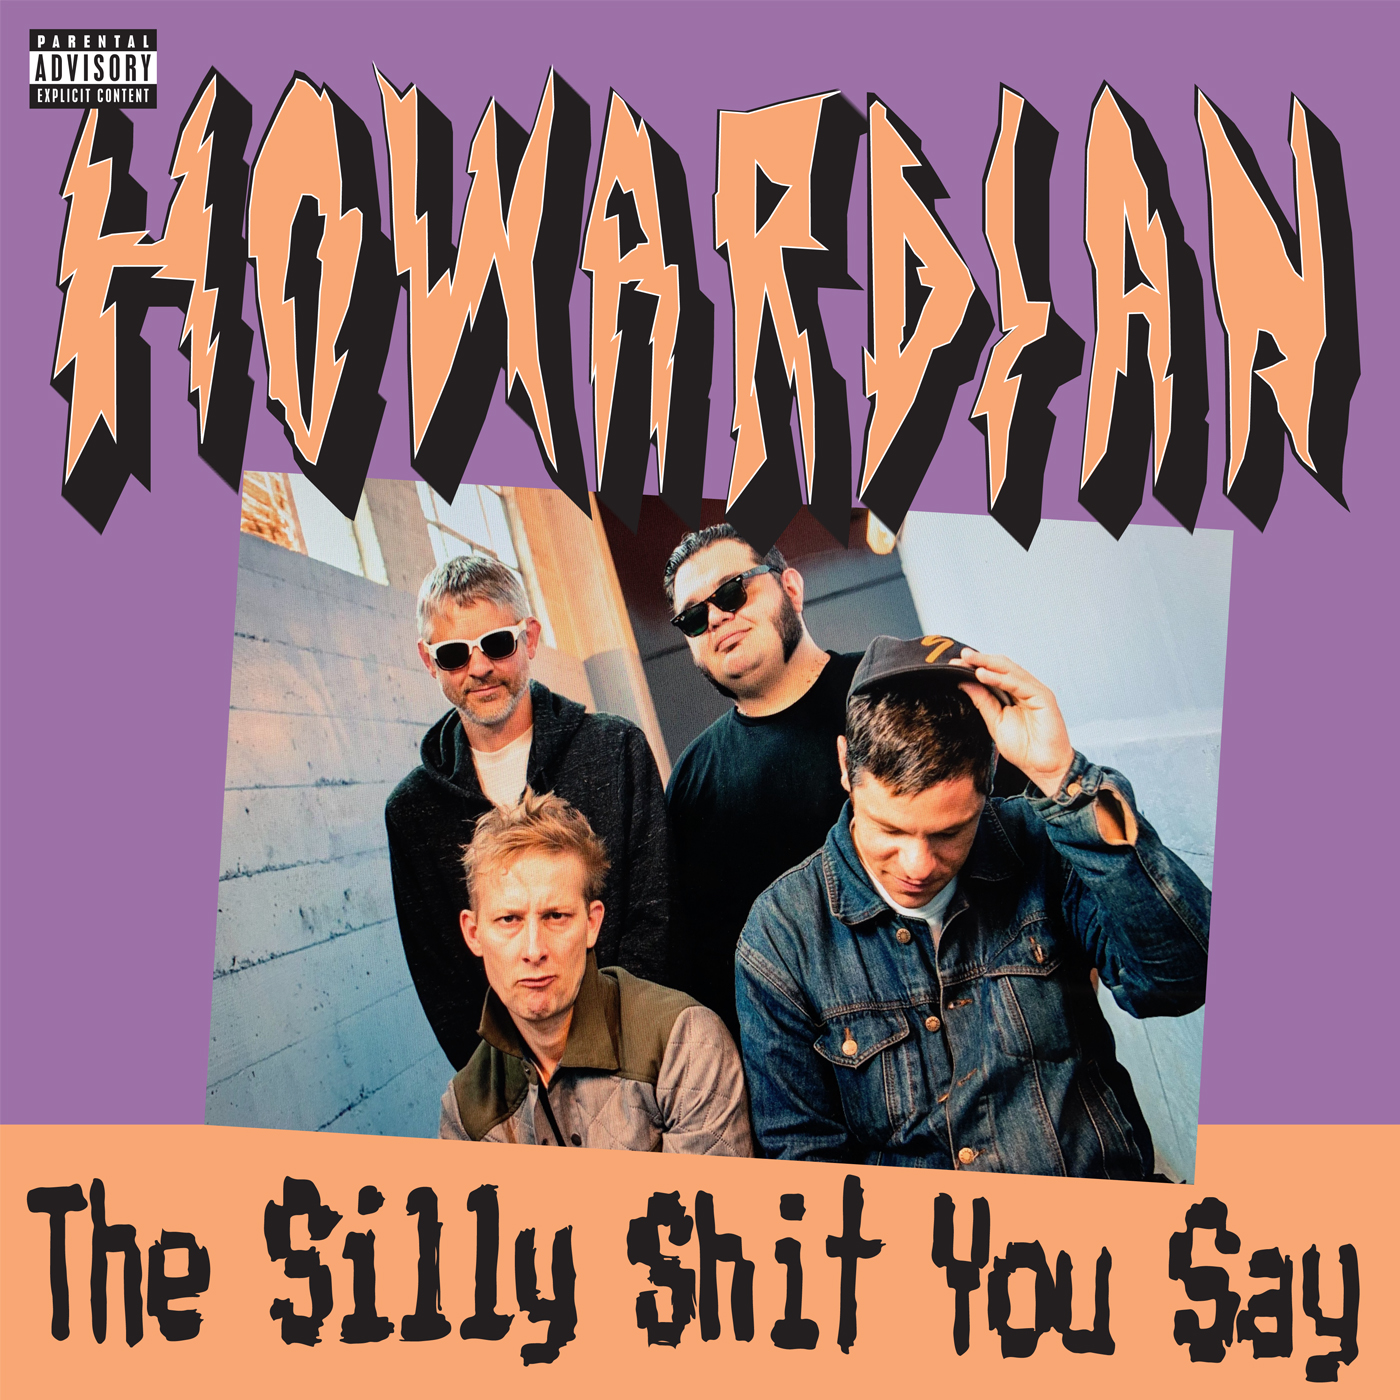 HOWARDIAN 'The Silly Shit You Say' OUT NOW ON LP/ TAPE ( SPLIT RELEASE WITH STAR CLEANER RECORDS)   Howardian's strange Punk / Hip Hop collective energy has been getting sharper as the project progresses. Their 7th release in five years, THE SILLY SHIT YOU SAY, is simultaneously fresh and unique punk music. The producer Damion Gallegos (The Coup, Sorry To Bother You) at CHUb studio in Oakland, CA provides a wide groove for the collective to sparkle on. Mike Tucci, who mastered the album, cleaned and boosted the songs with his great ears. Somber pop punk tones underpin a large bottom end and synths wiggles blend with odd guitars. Ten songs that hang well as a group and a few singles you'll never get outta yer head.    200 pressed on black vinyl and comes with a zine, sticker and download code! Ships 3/15!